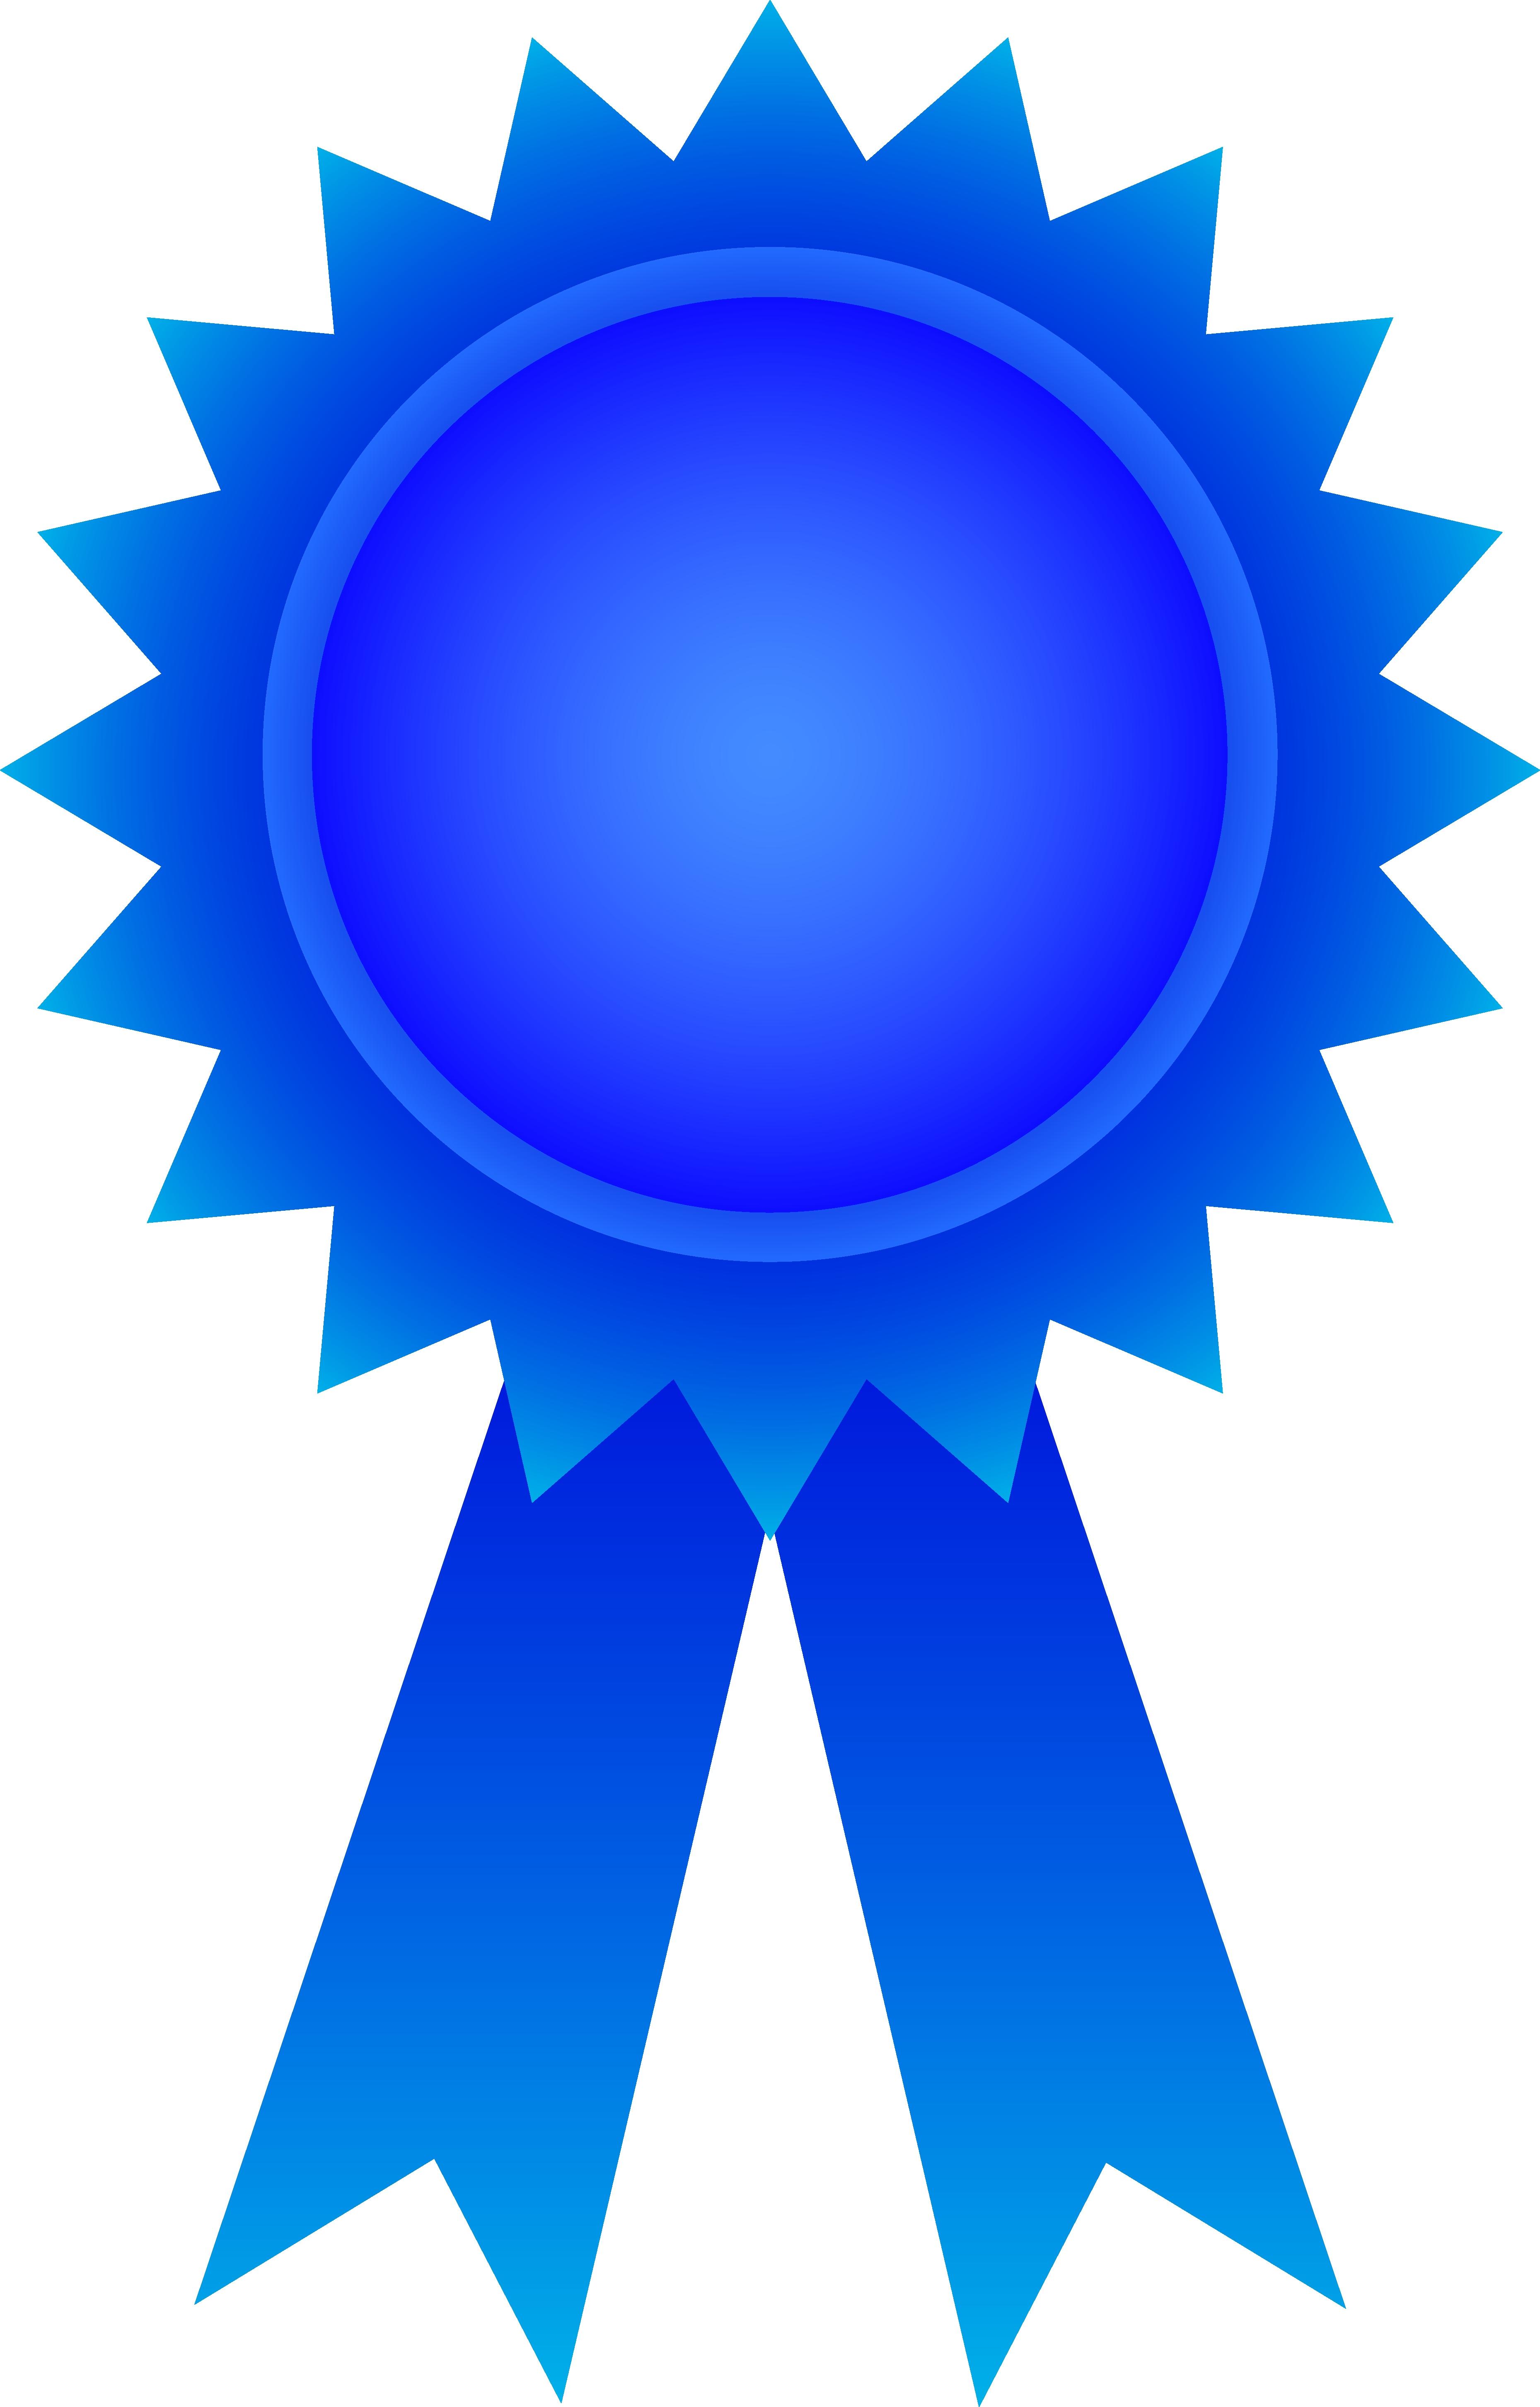 Award clipart. Blue ribbon